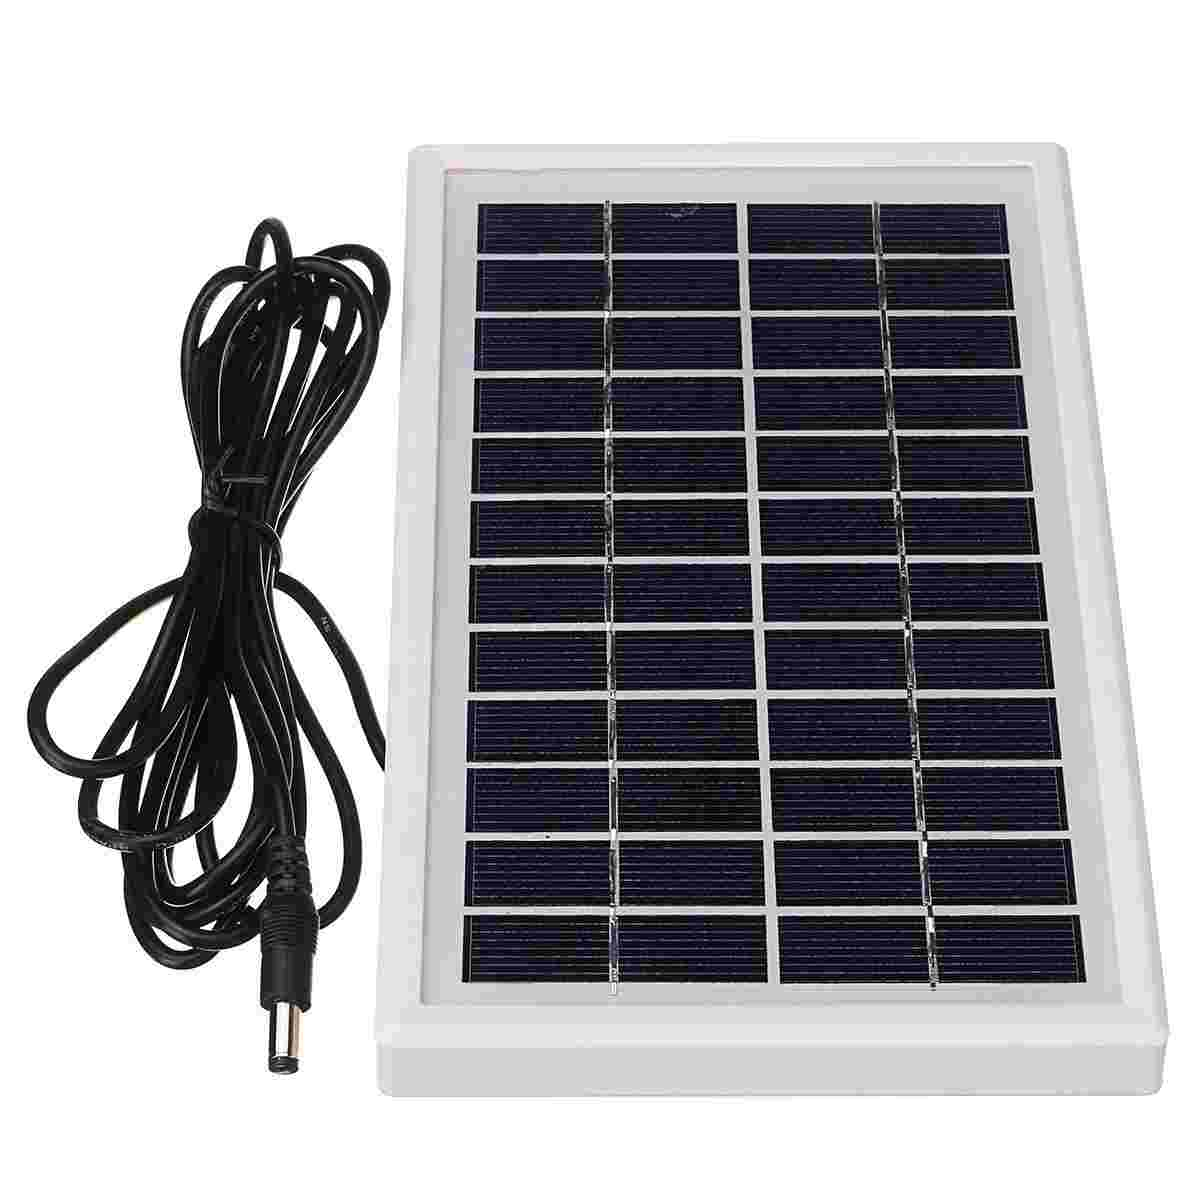 Hinergy Polycrystalline Silicon Mini Solar Panels 12V 3W DIY Powered Kit System Thumb 1